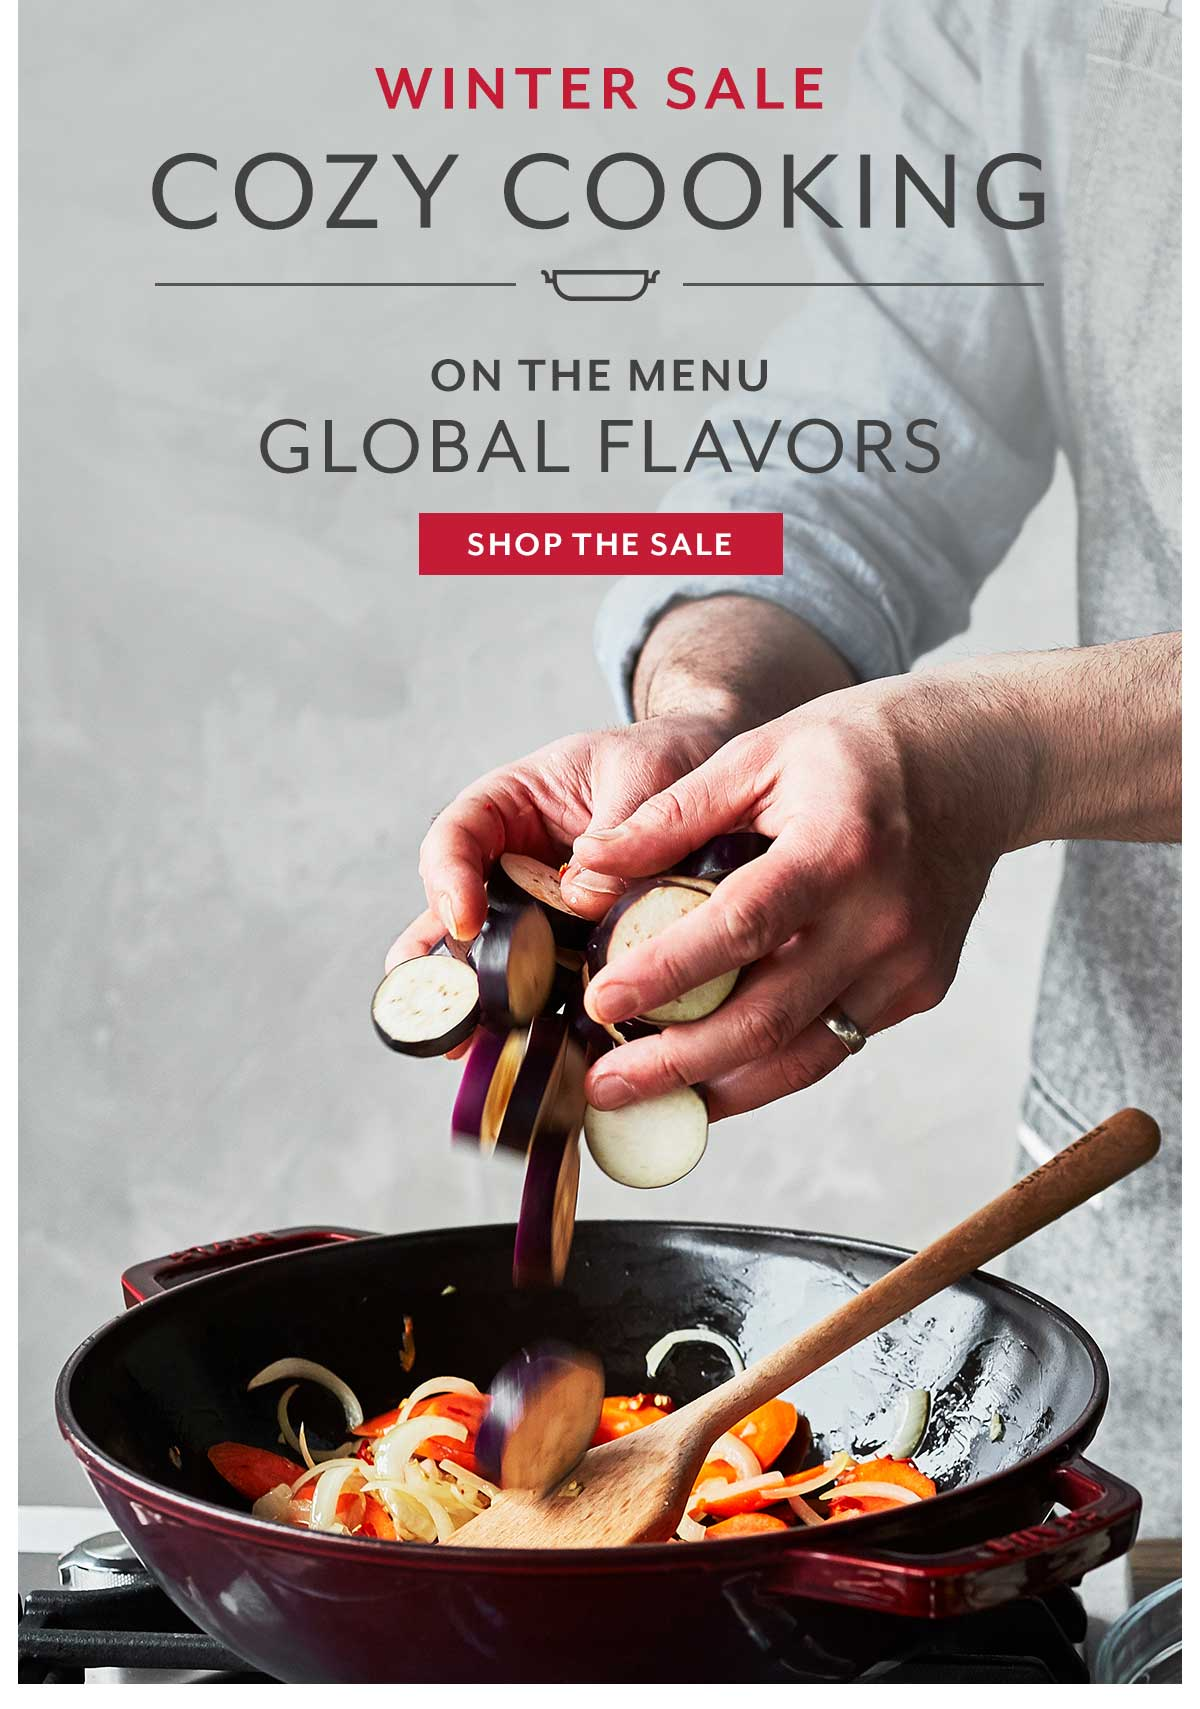 Cozy Cooking: Global Flavors